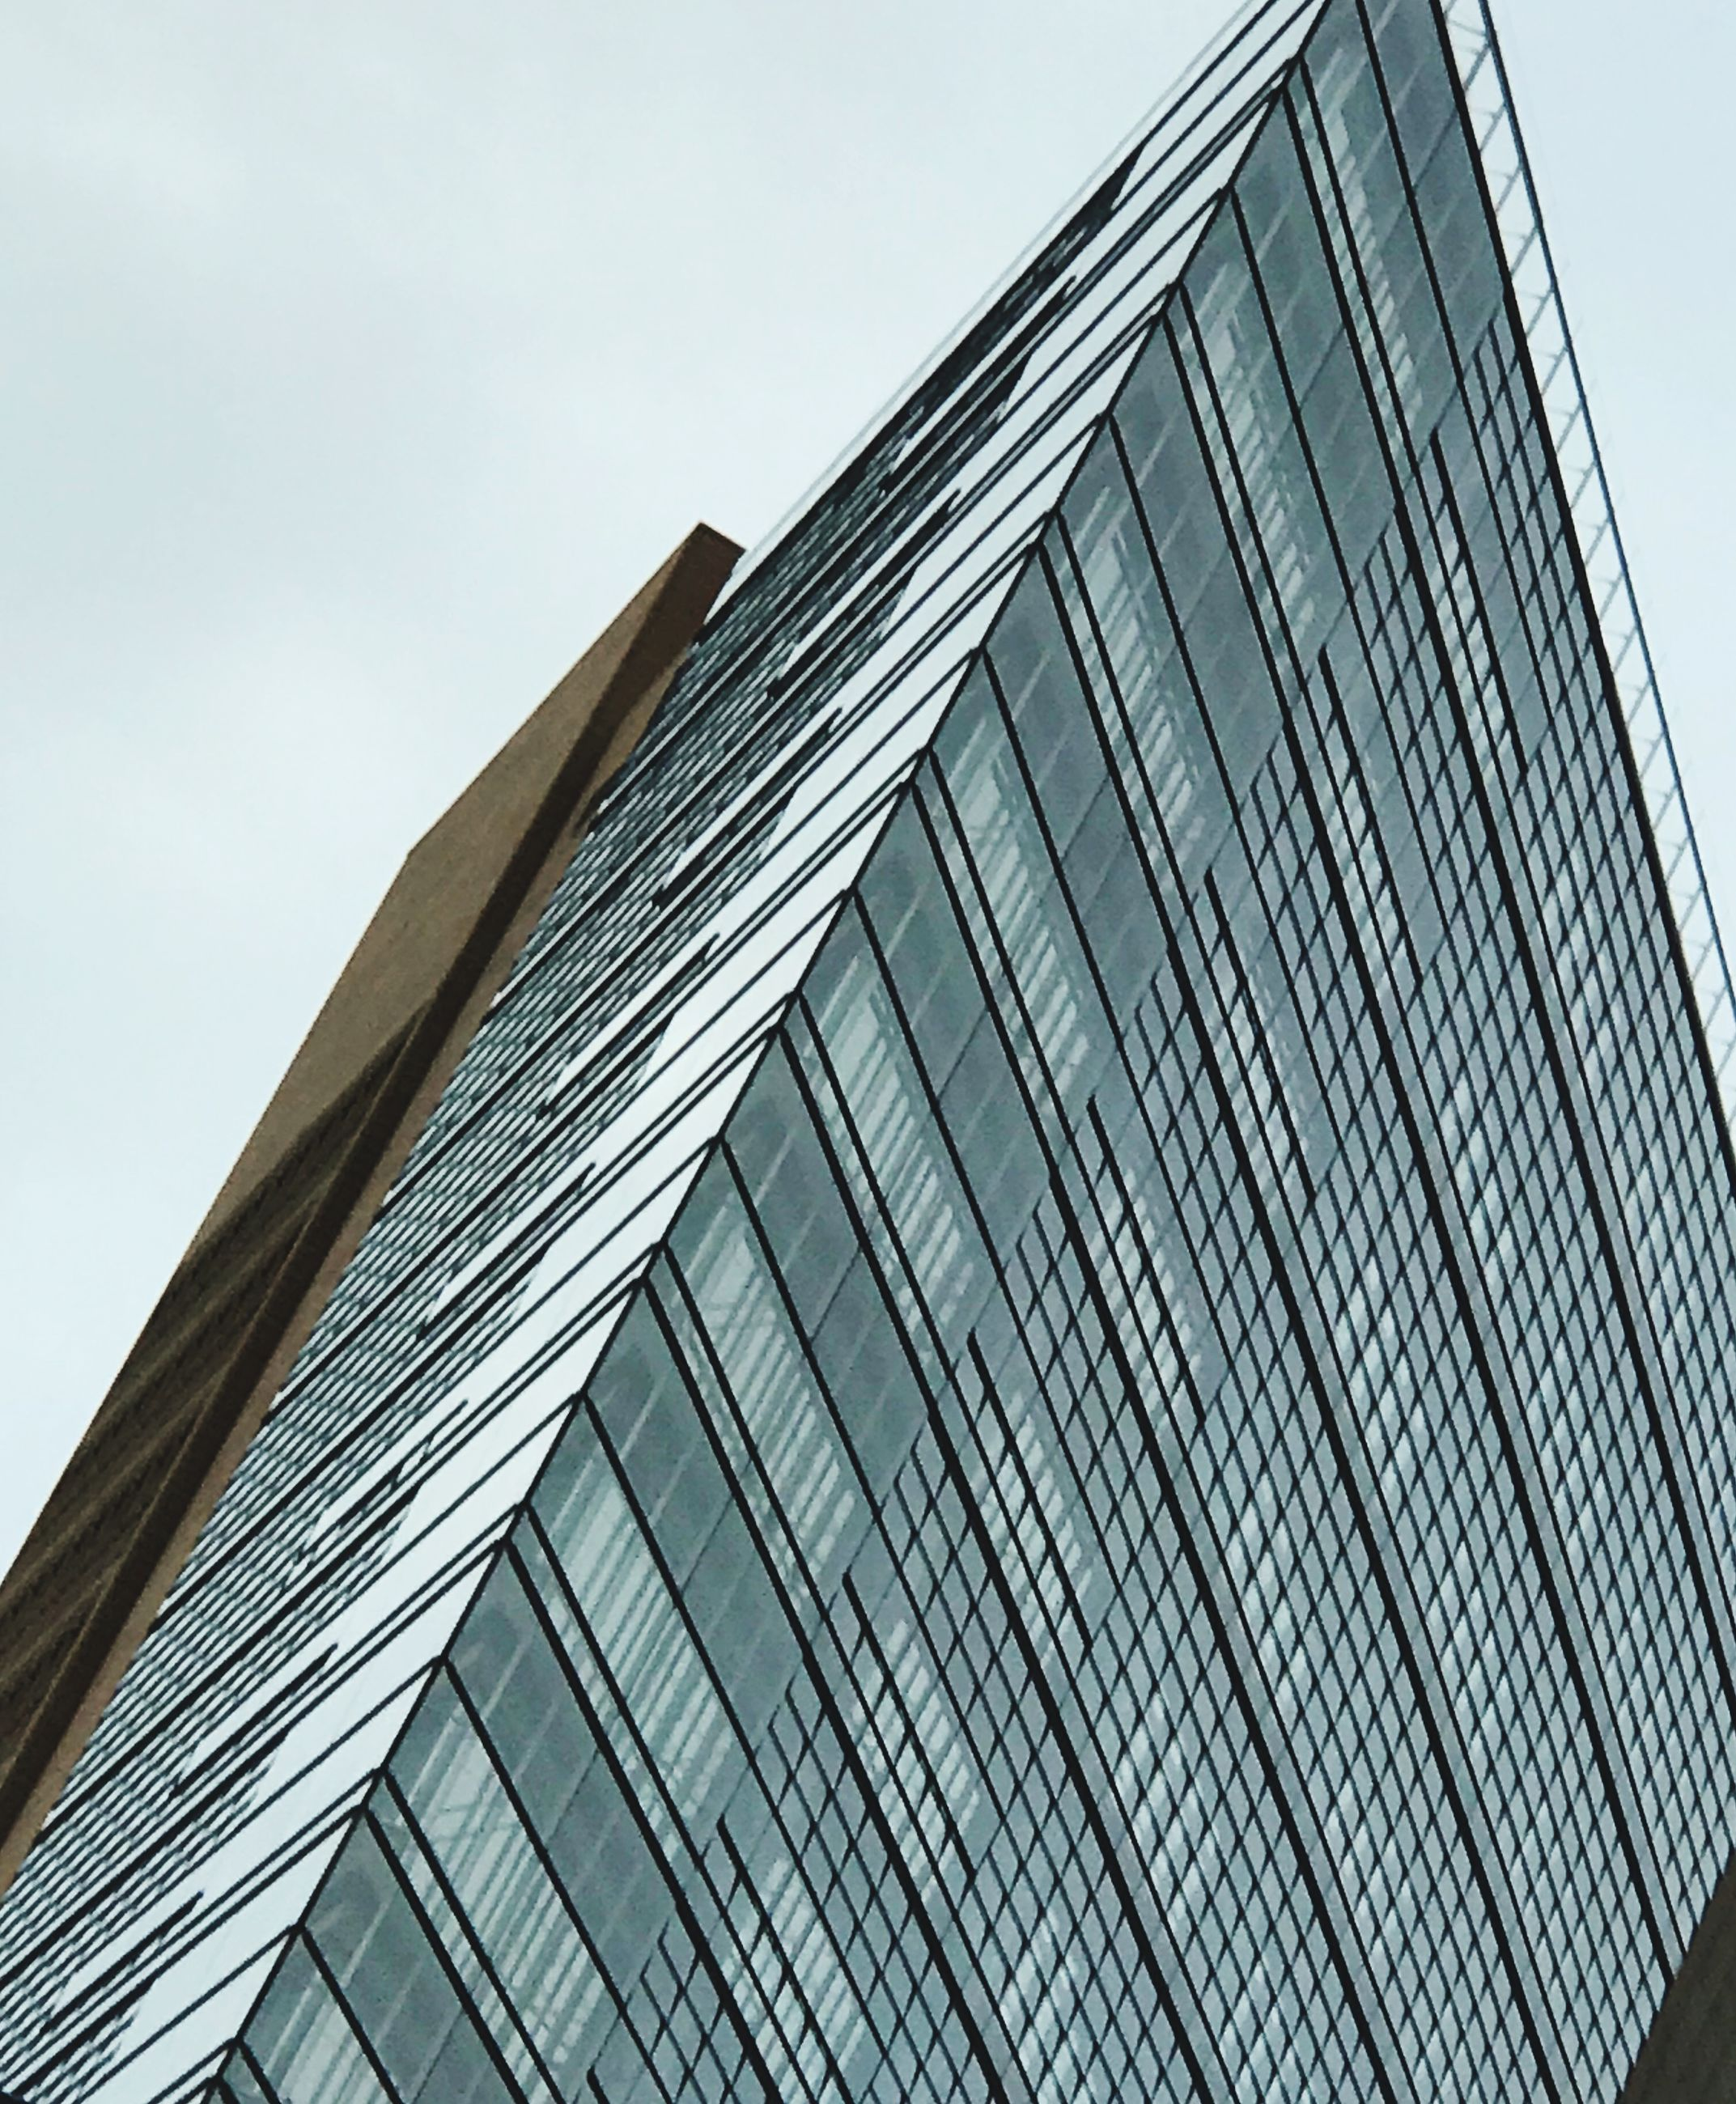 architecture, built structure, building exterior, low angle view, modern, window, no people, outdoors, sky, skyscraper, city, day